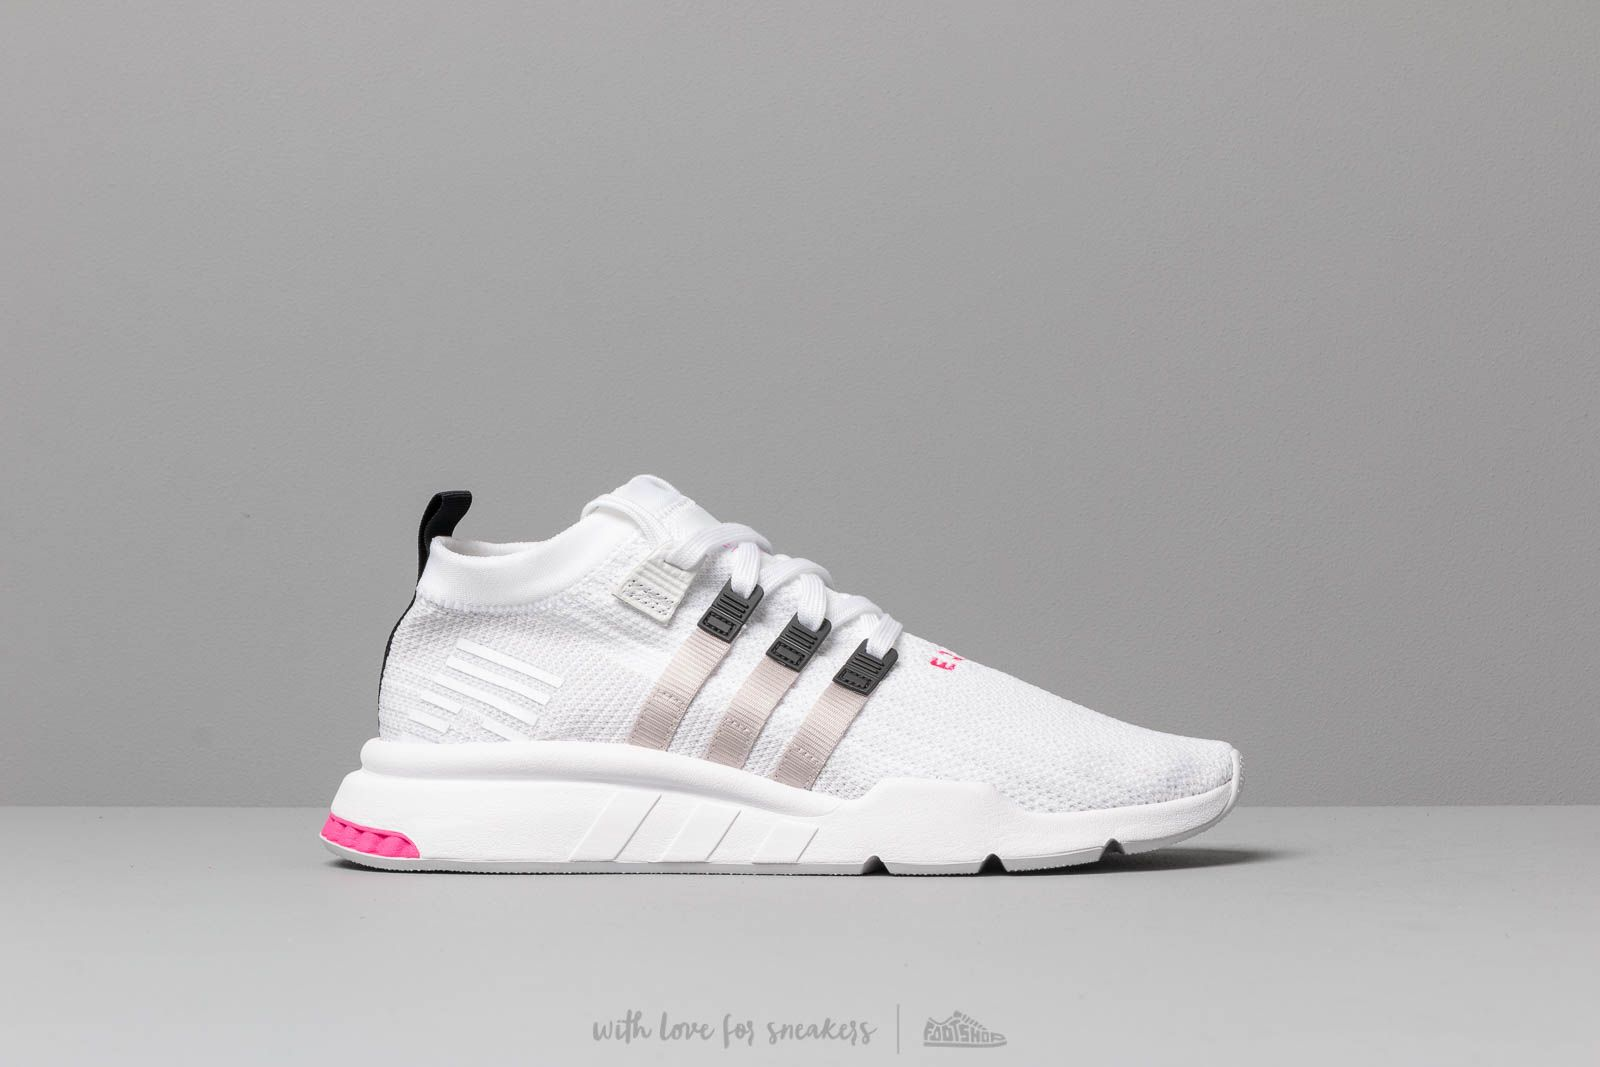 free shipping ede38 91a6c adidas EQT Support Mid Adv Pk Ftw White  Grey Two  Core Black a muy